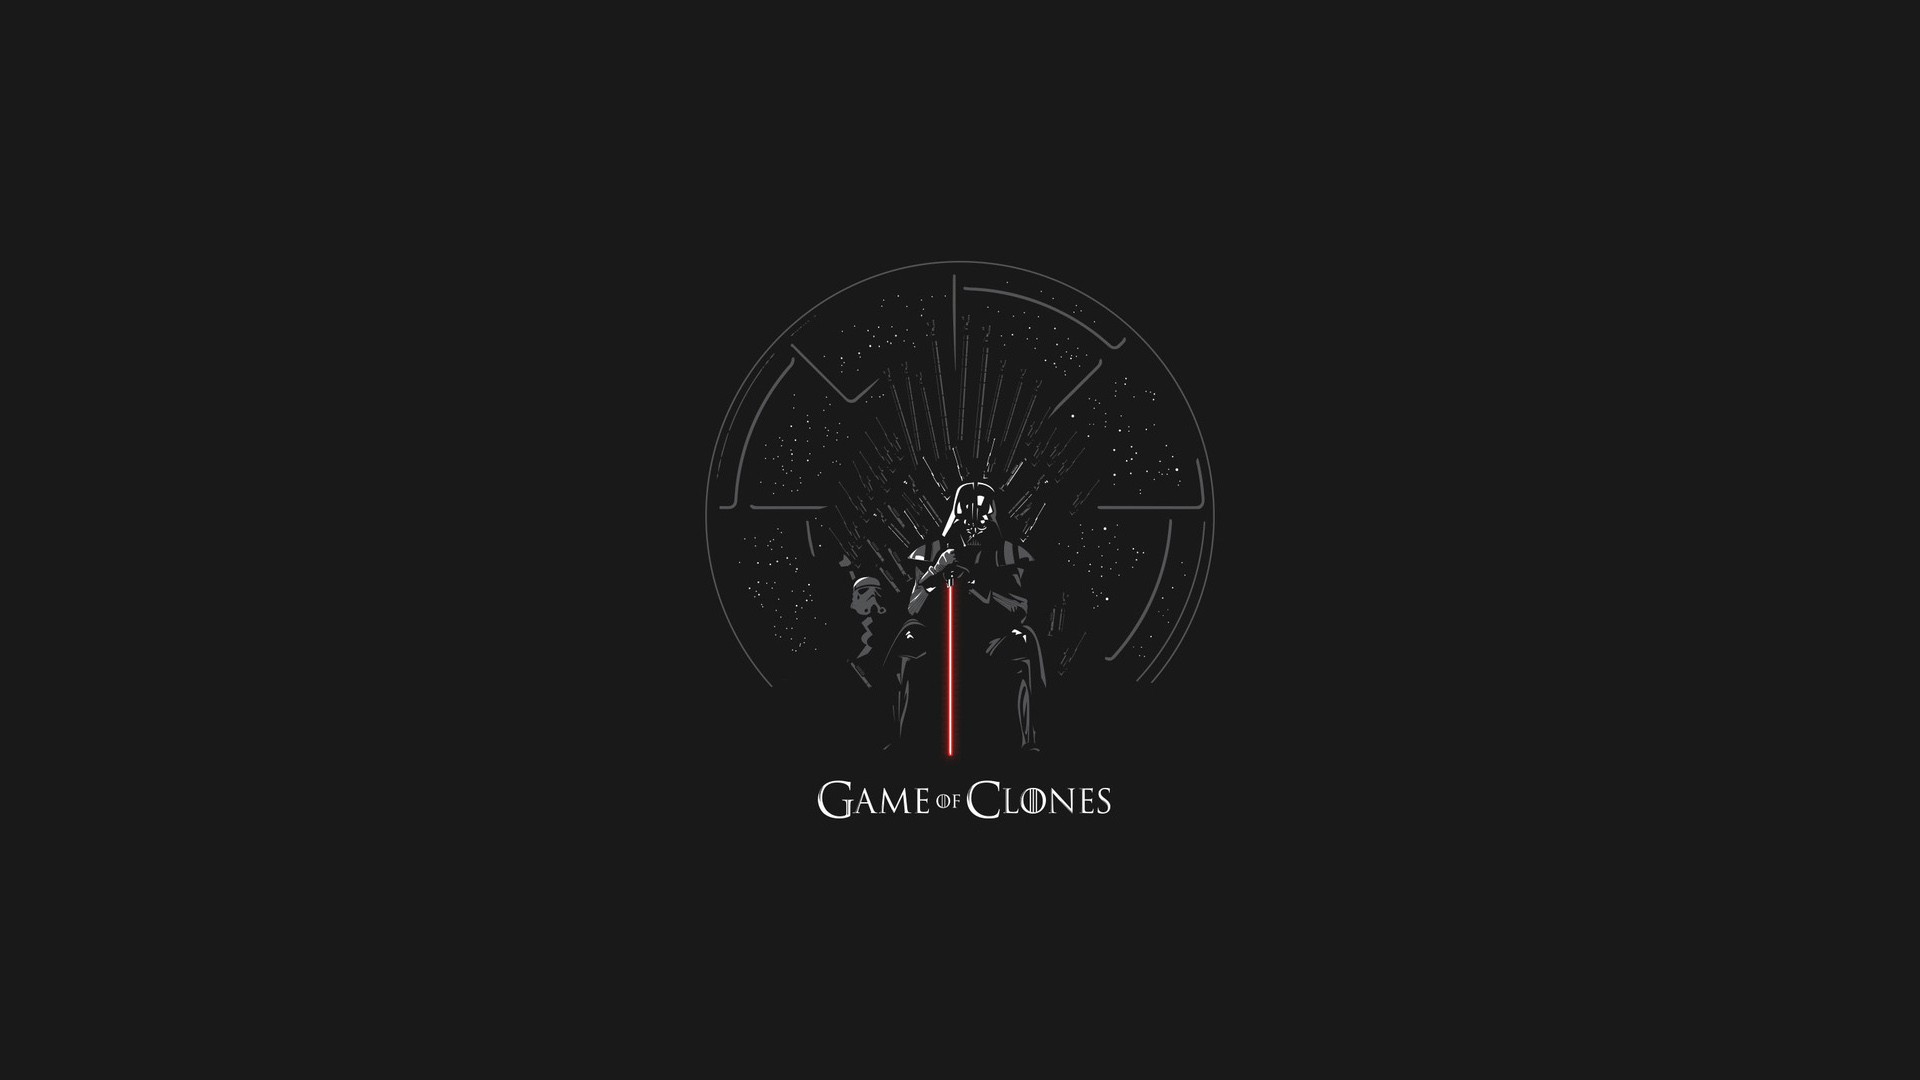 Free Download Game Of Thrones Star Wars Wallpapers Mash Up Simple Minimalist 1920x1080 For Your Desktop Mobile Tablet Explore 47 Simplistic Gaming Wallpapers Minimalist Wallpaper Imgur Minimalist Wallpaper Minimalist Wallpaper Reddit